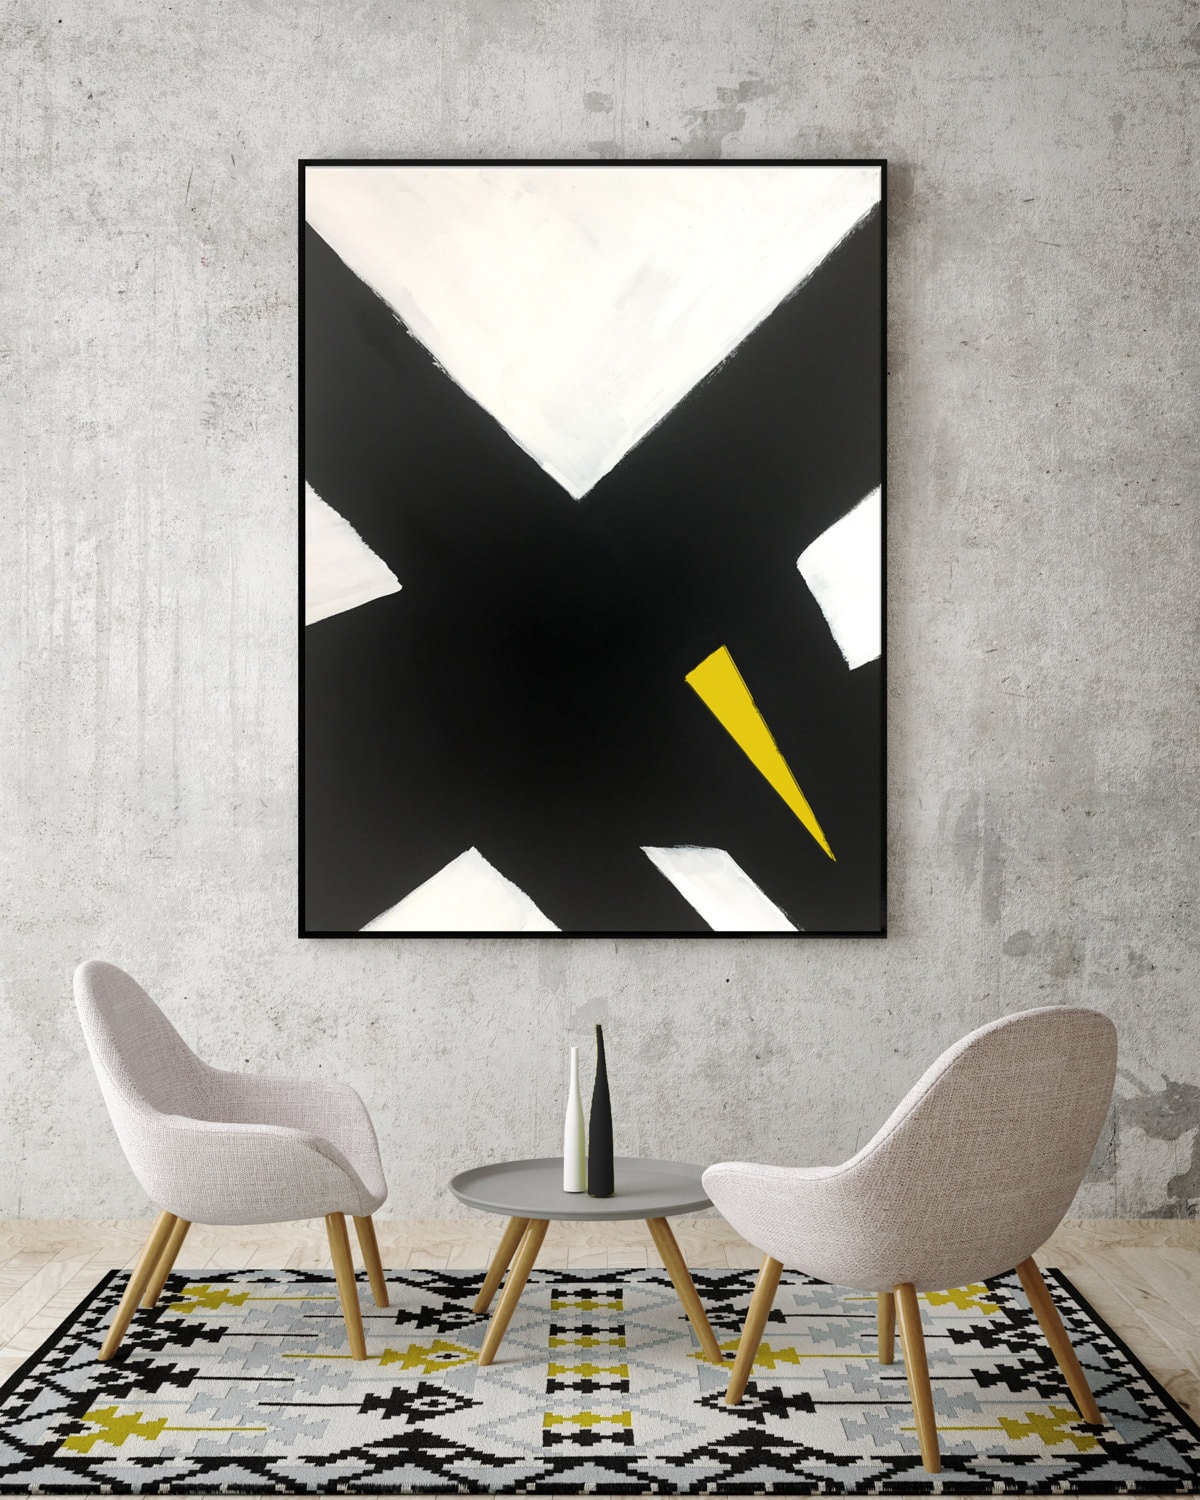 Black And White Canvas Pictures Abstract Black And White Yellow Canvas Painting For Modern Room